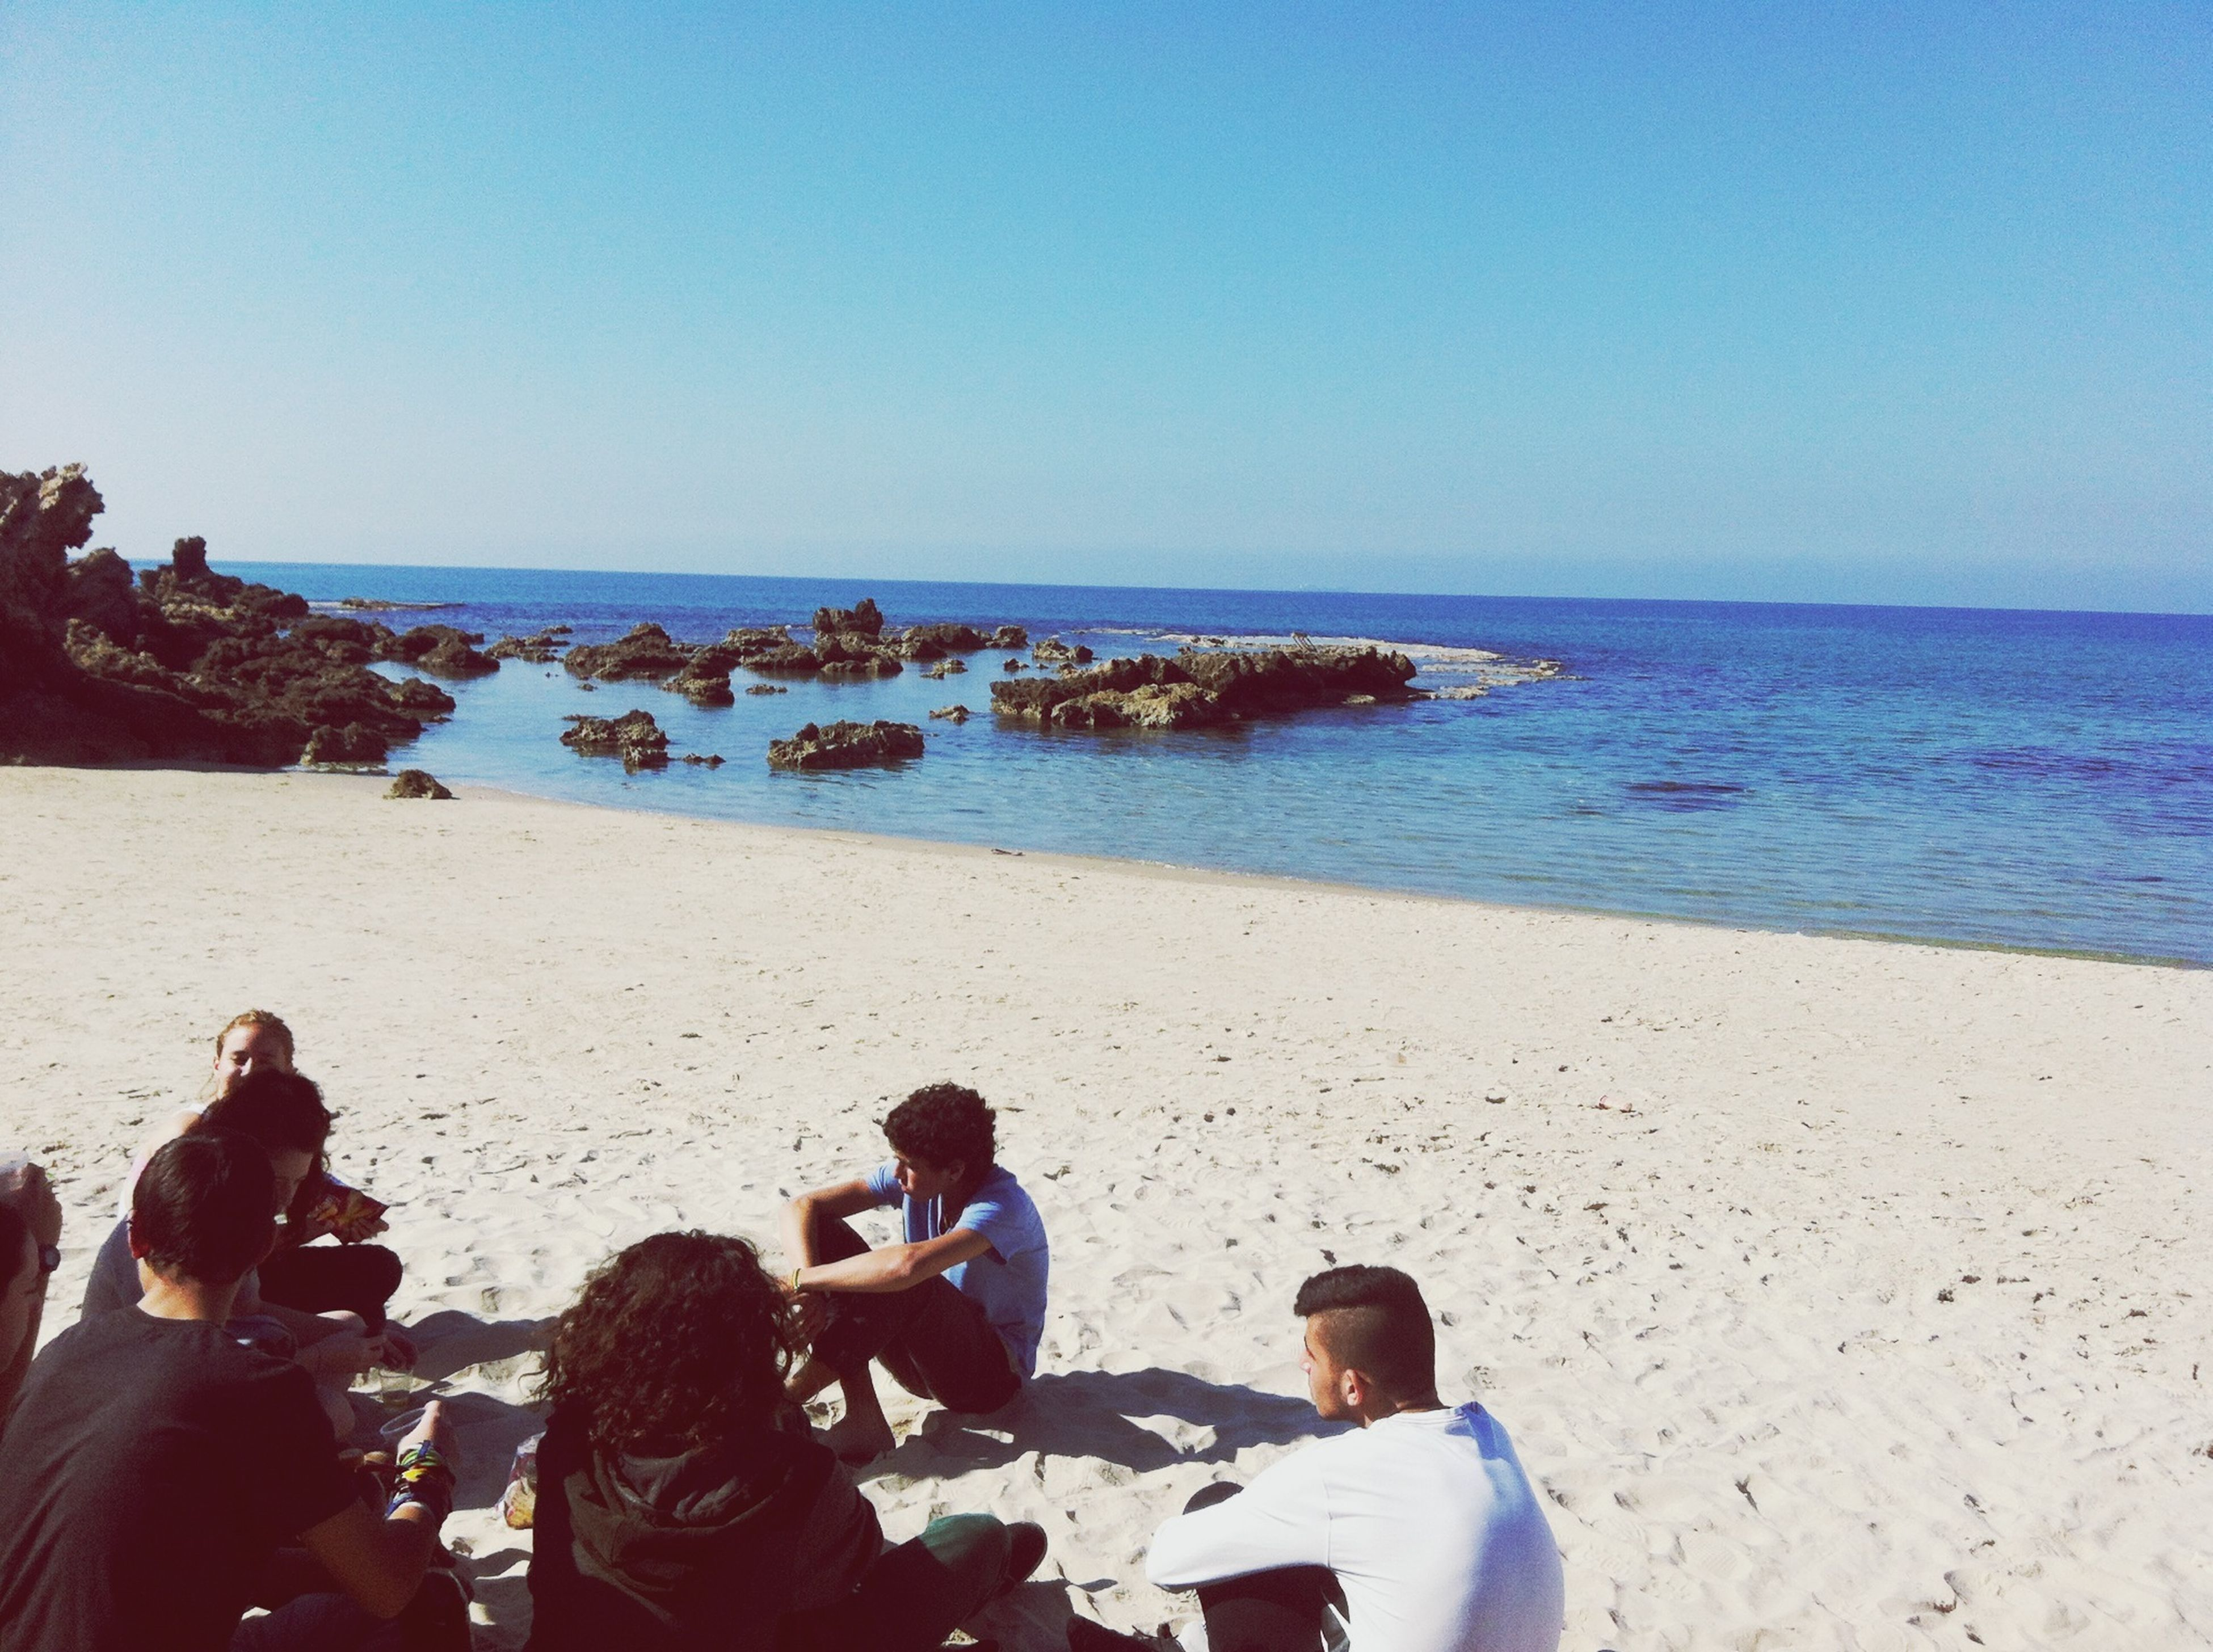 sea, horizon over water, water, beach, clear sky, shore, lifestyles, copy space, leisure activity, scenics, beauty in nature, vacations, tranquility, tranquil scene, blue, nature, men, sand, person